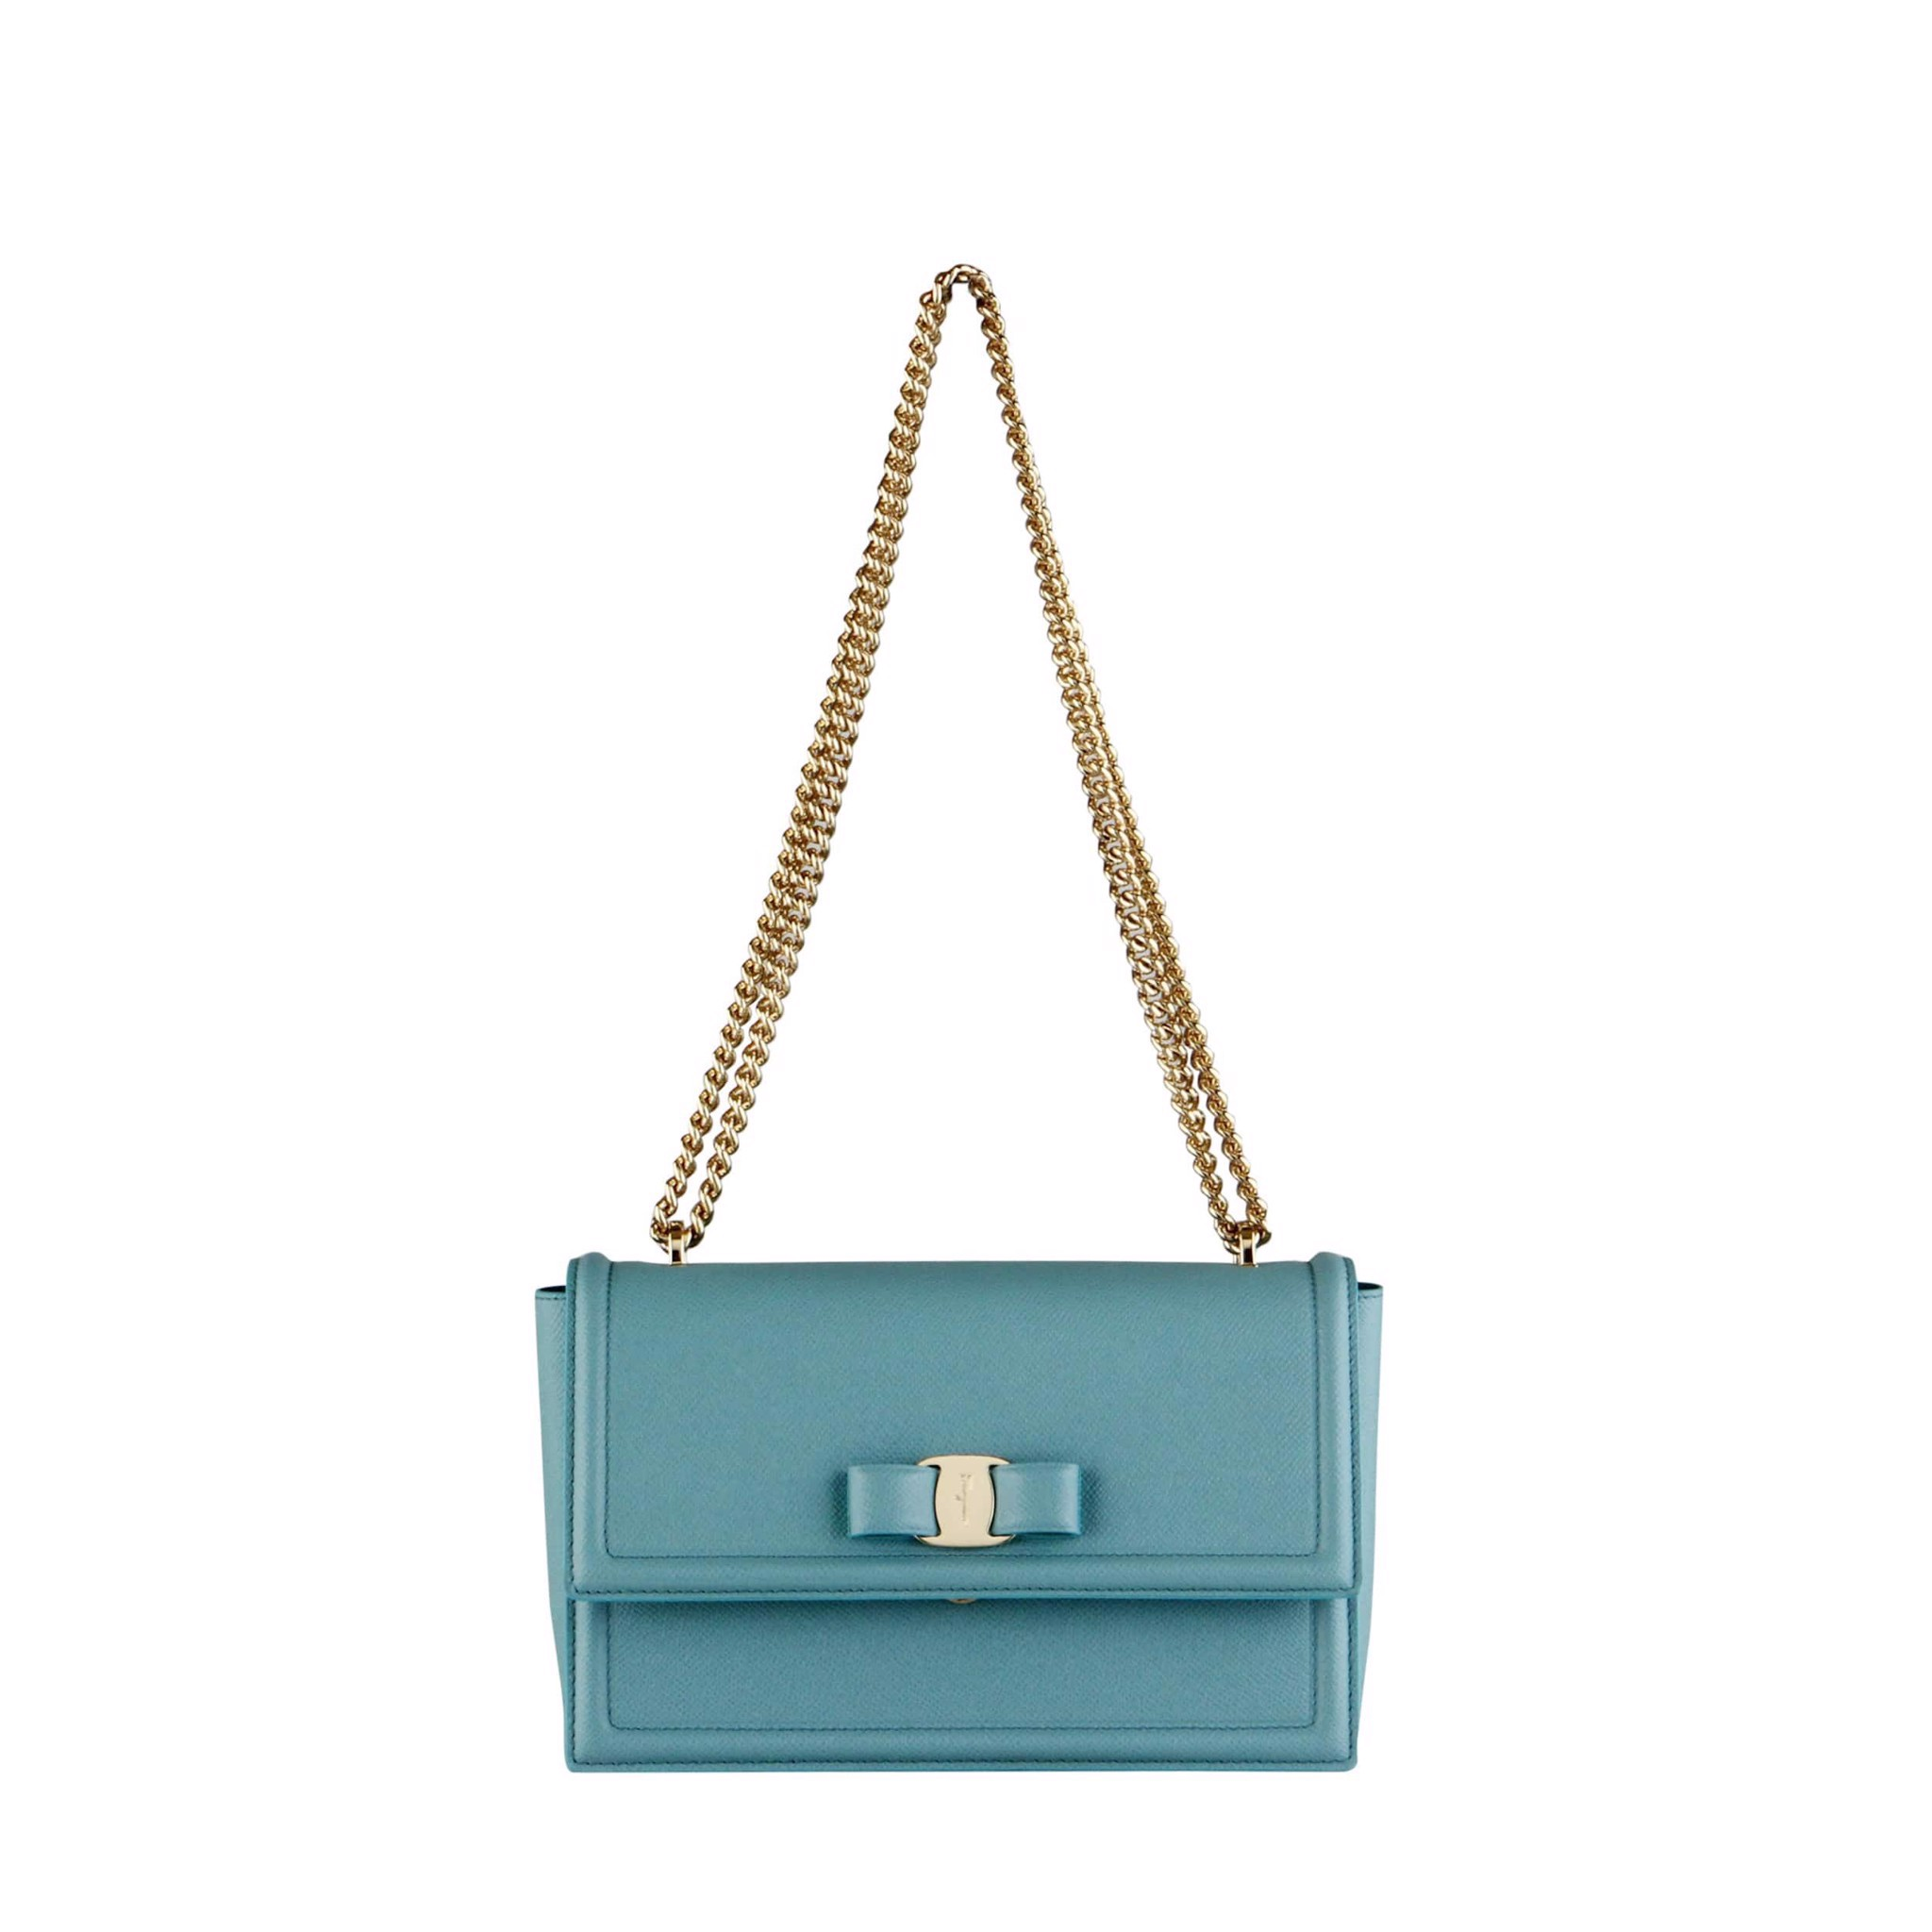 Vara bow flap bag